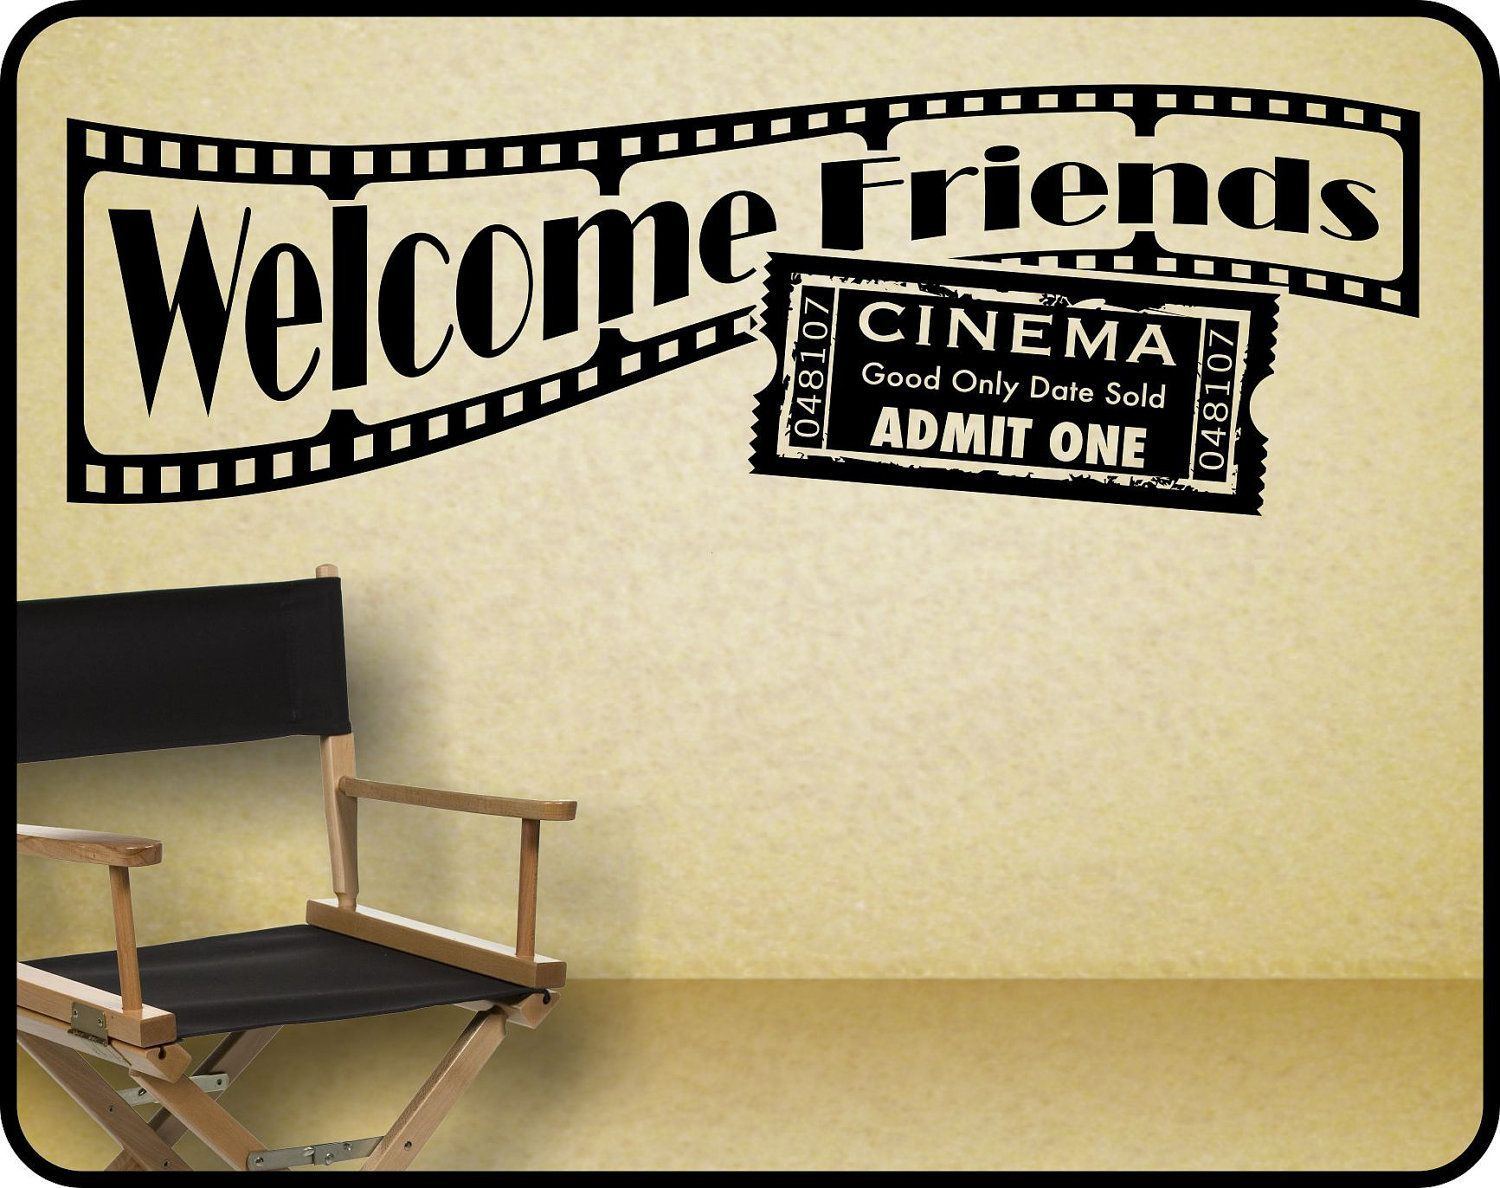 home theater wall decal sticker decor welcome friends with hollywood movie theme 38 x 12 - Home Theater Decor